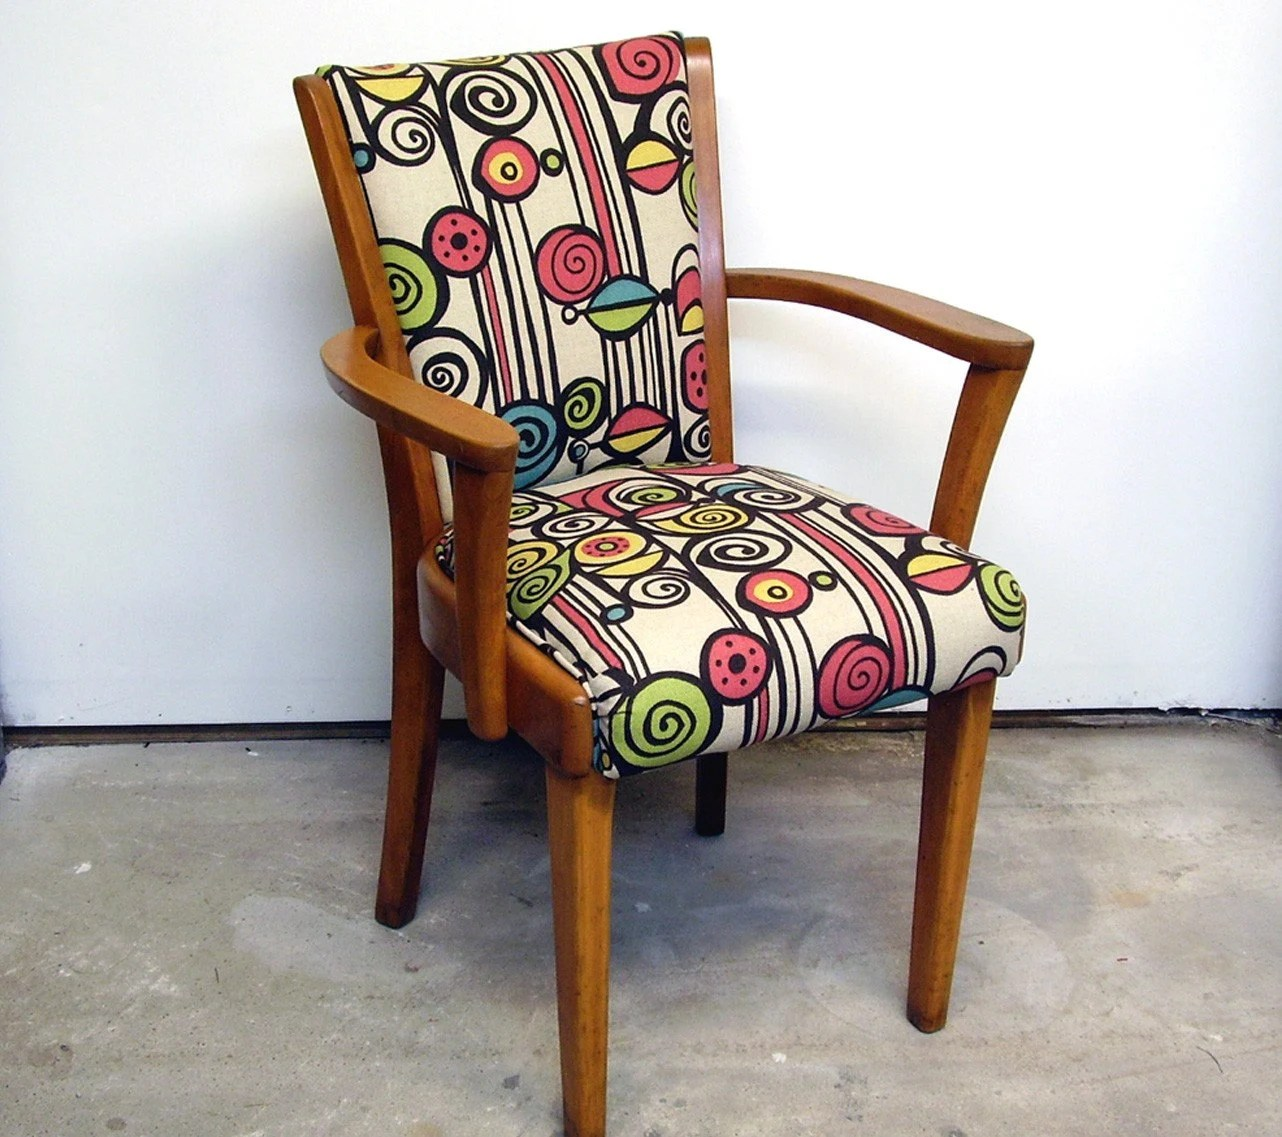 desk chair retro bean bag gaming vintage wooden by ljindustries on etsy